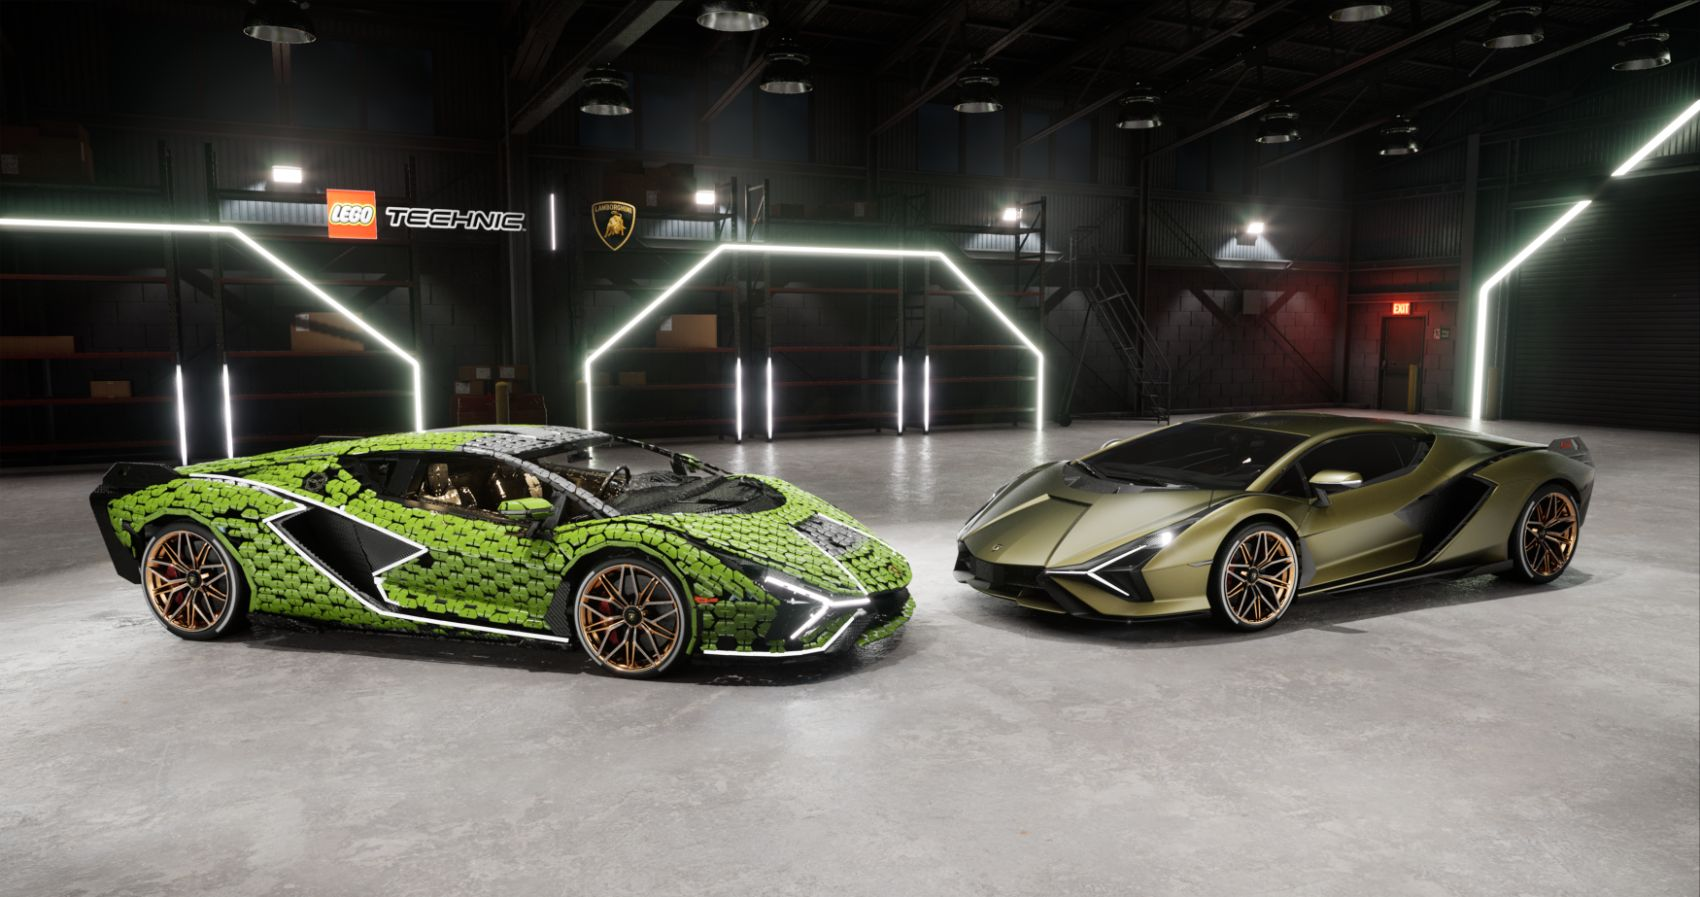 You Won't Believe This Lamborghini Sián Made Entirely From LEGOs!